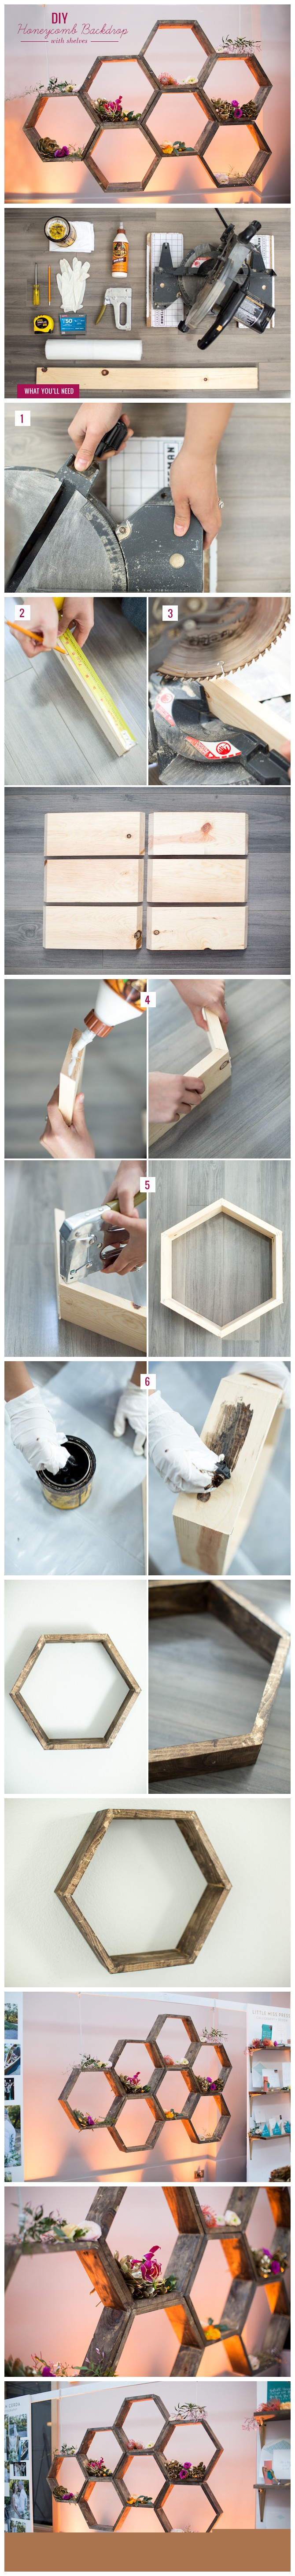 Diy HoneyComb Backdrop With Shelves Tutorial